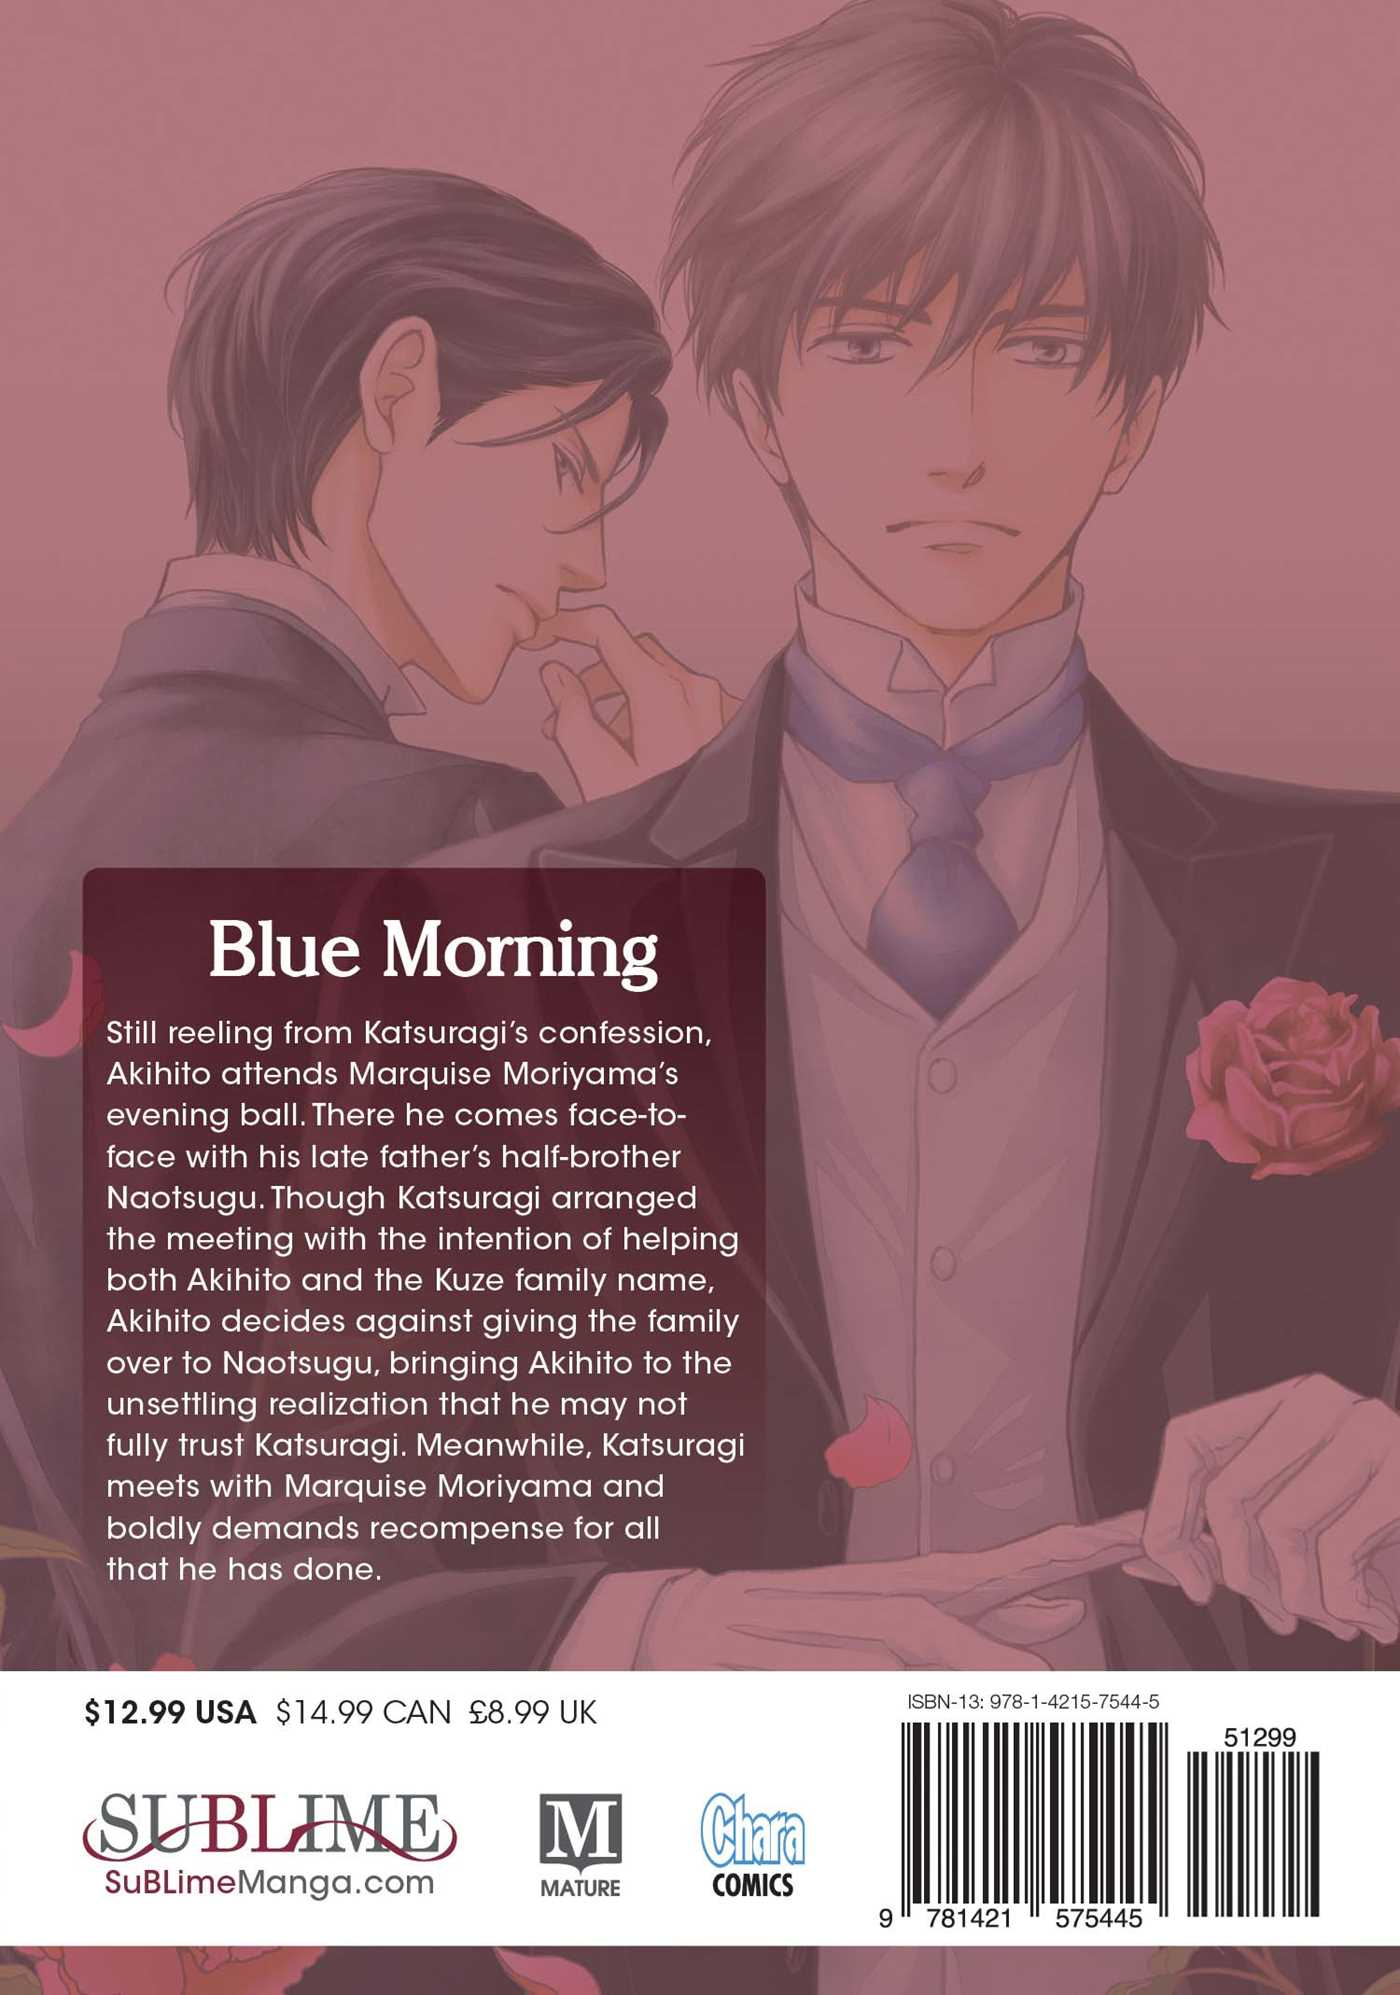 Blue morning vol 5 9781421575445 hr back